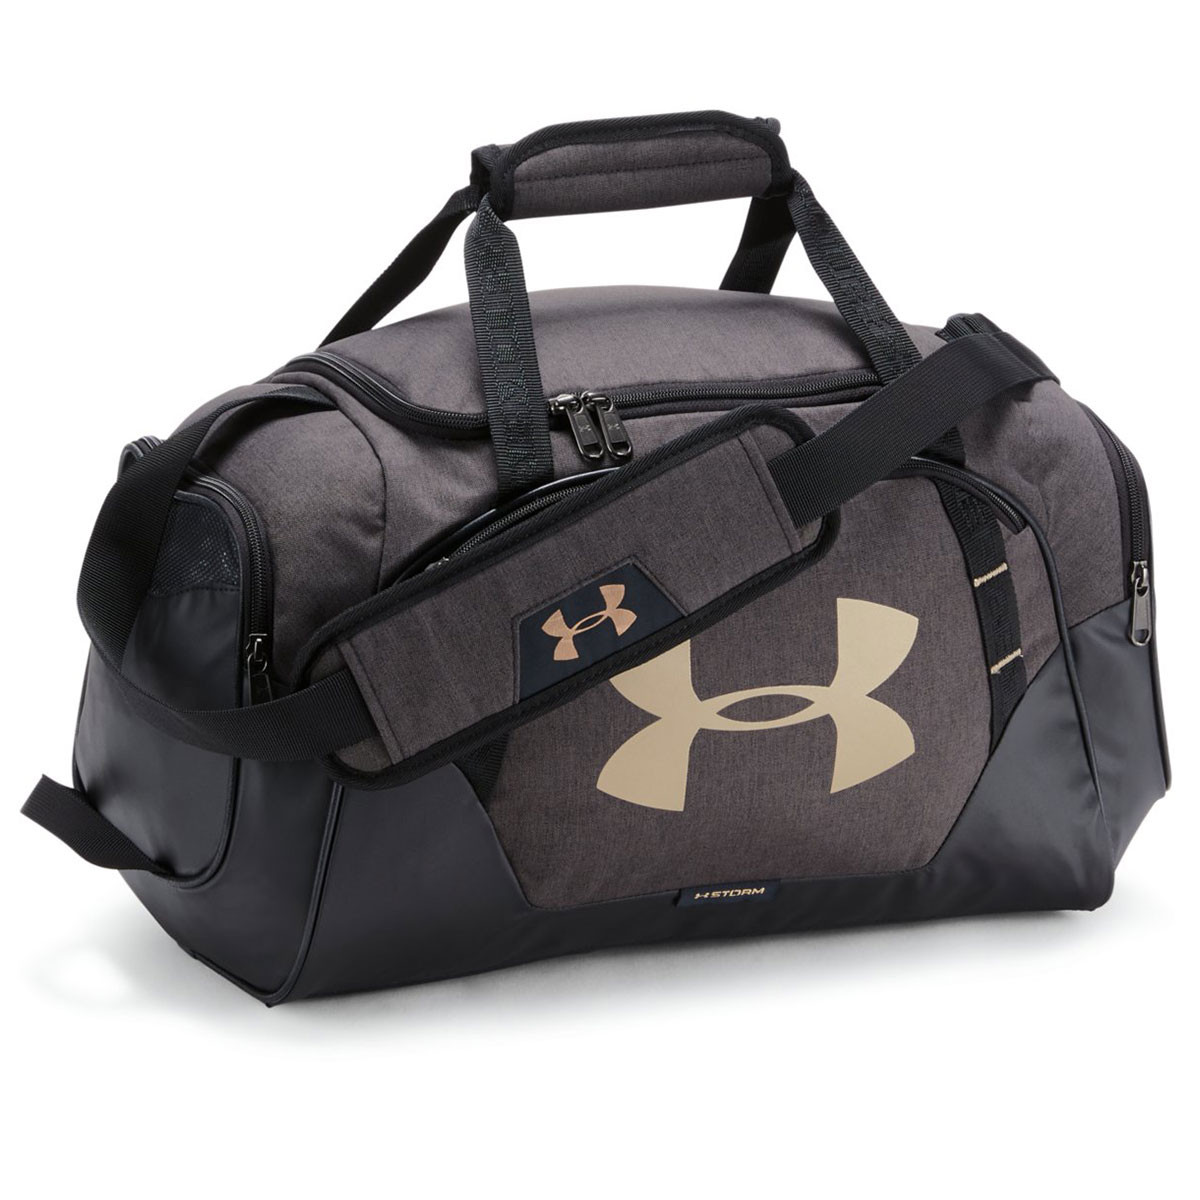 4b4f6a9dffca1 Under Armour Unisex 2019 UA Undeniable Duffle 3.0 XS Bag